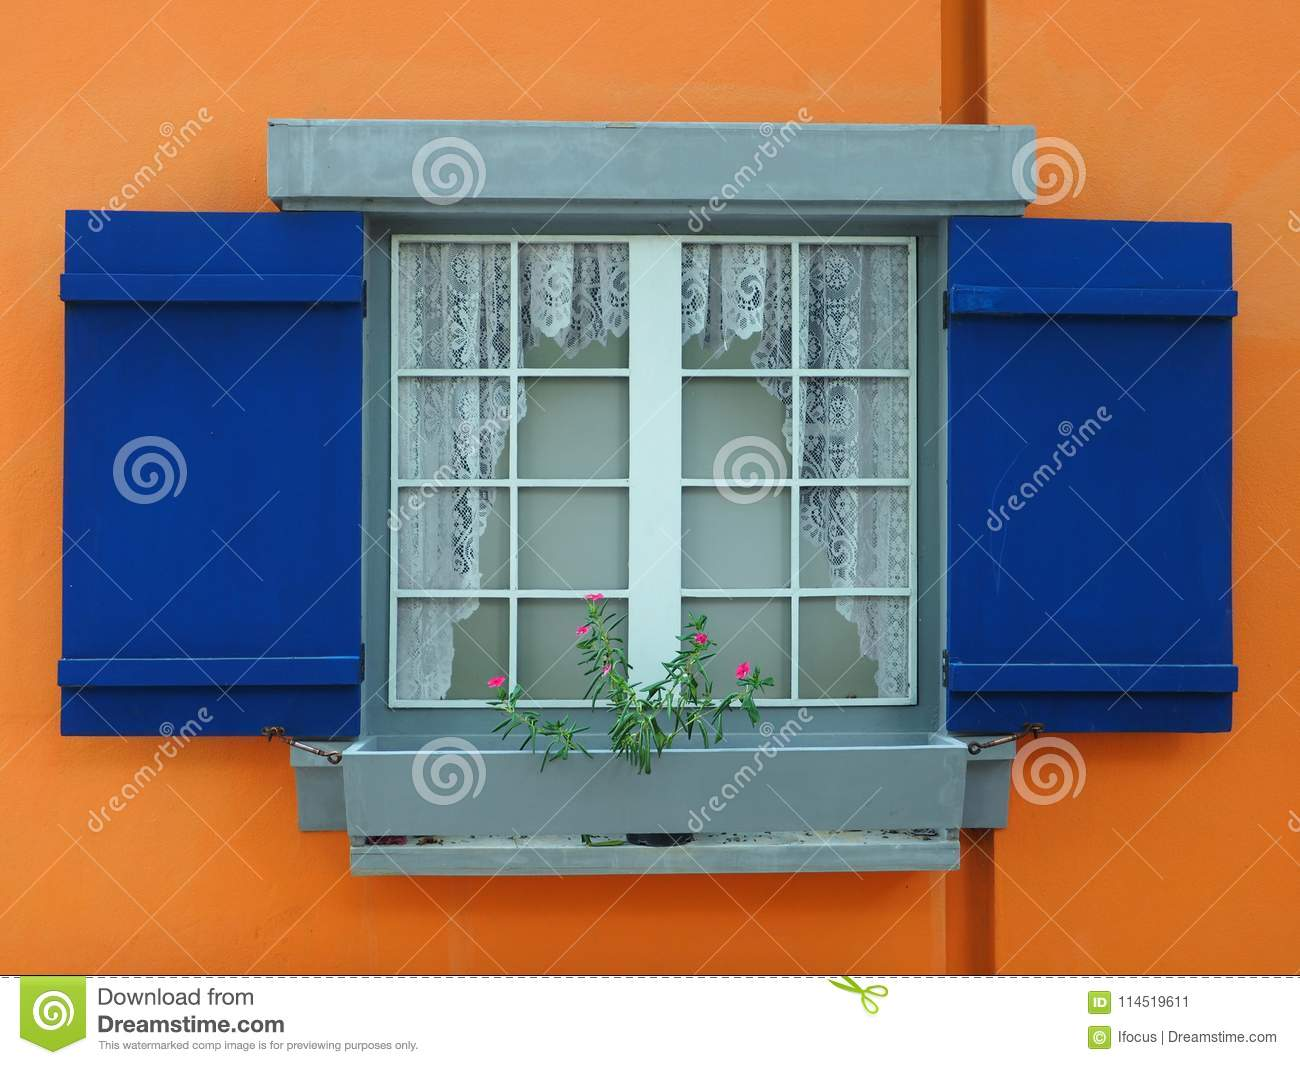 Blue Shutters On Orange Walls Stock Image Image Of Wall Painting